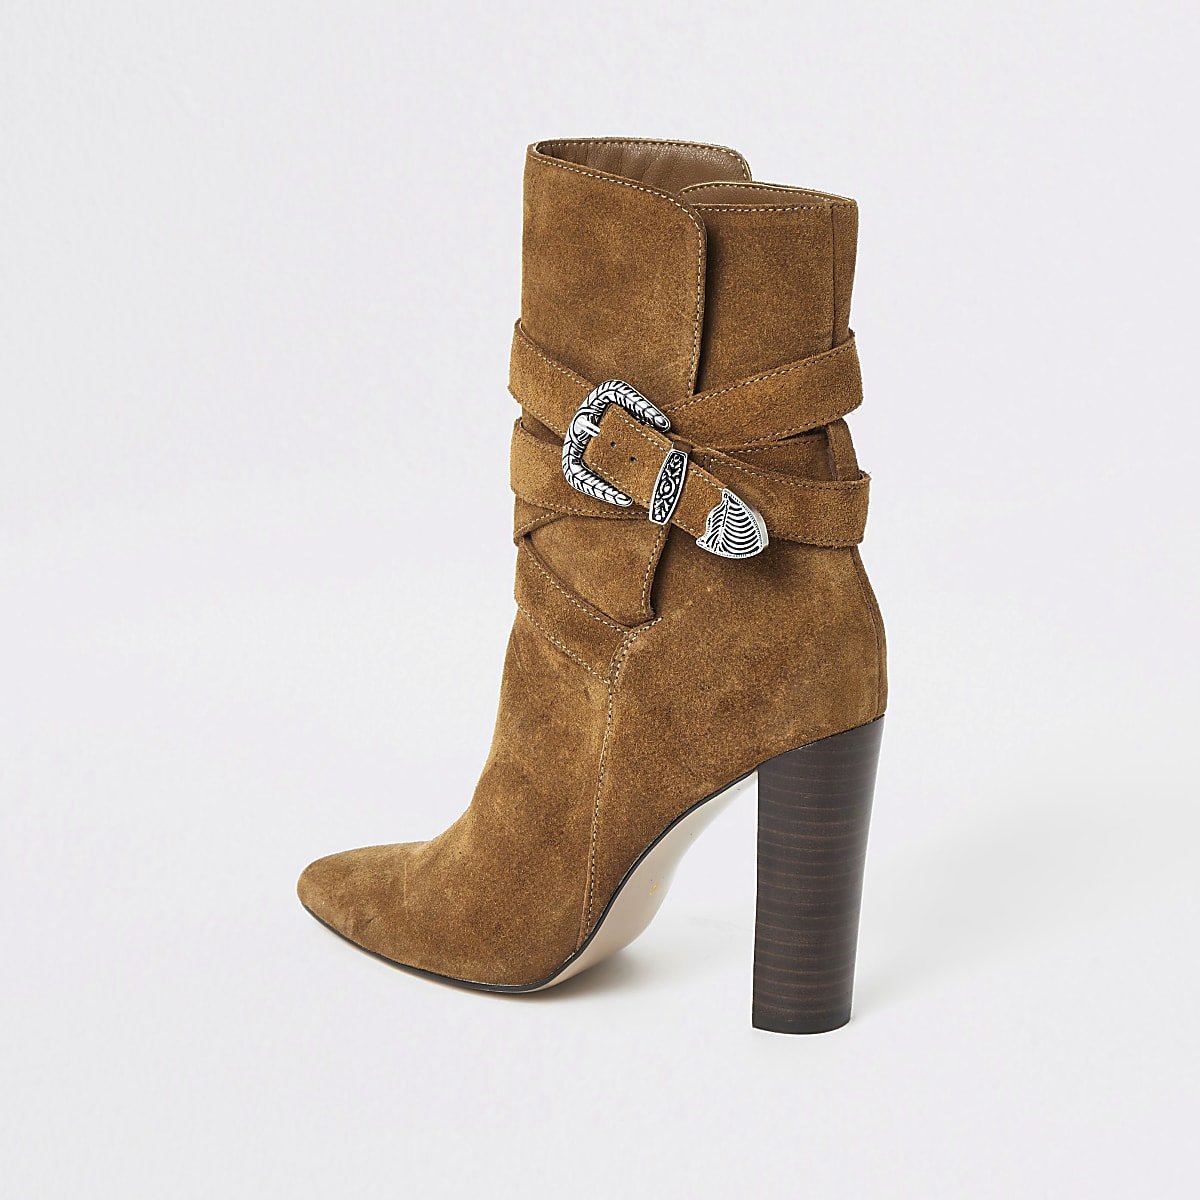 b21f9db6433 Brown suede western heeled boots